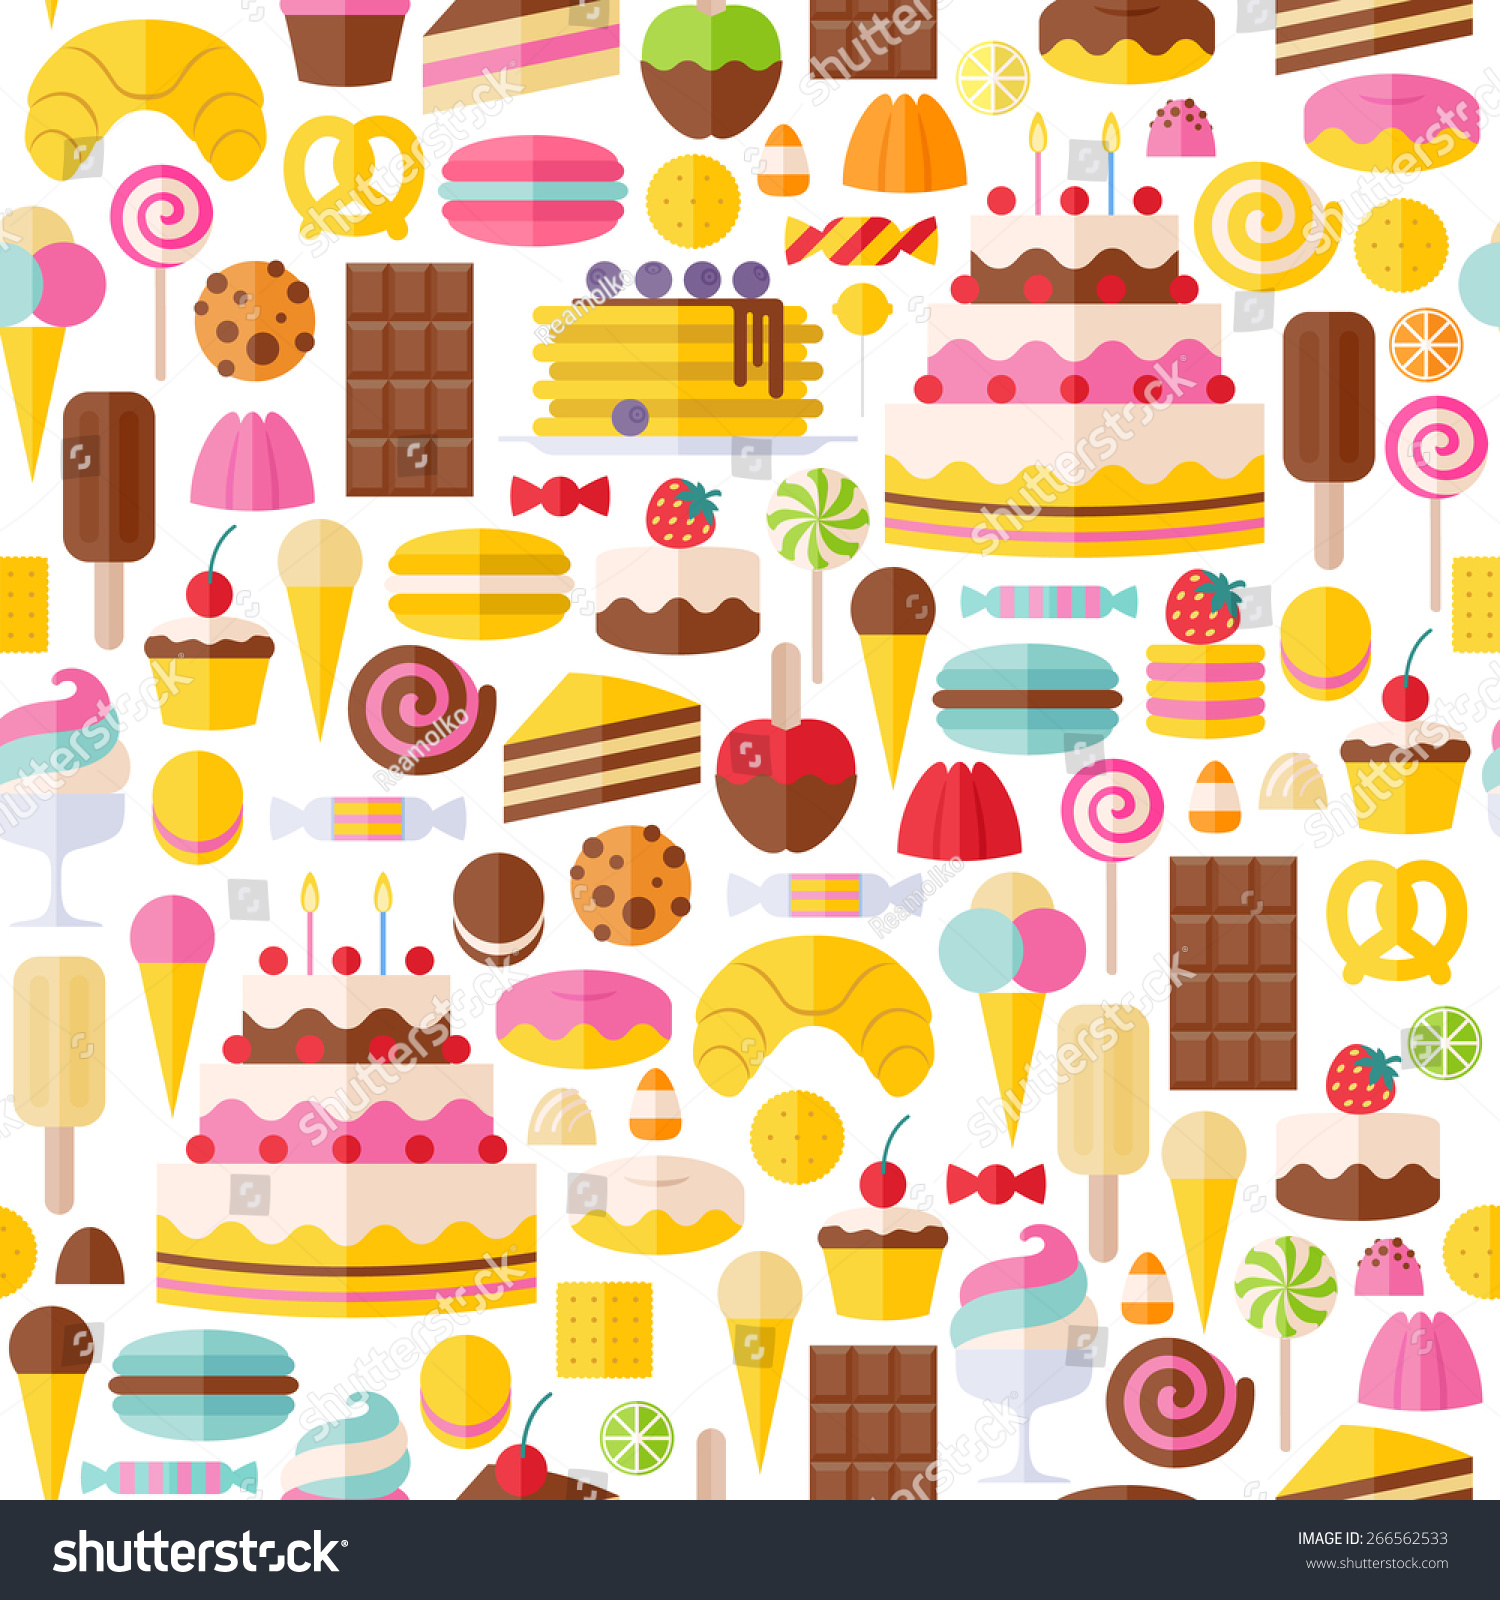 Sweet Ice Cream Flat Colorful Seamless Pattern Vector: Sweet Food Icons Seamless Pattern Candy Stock Vector